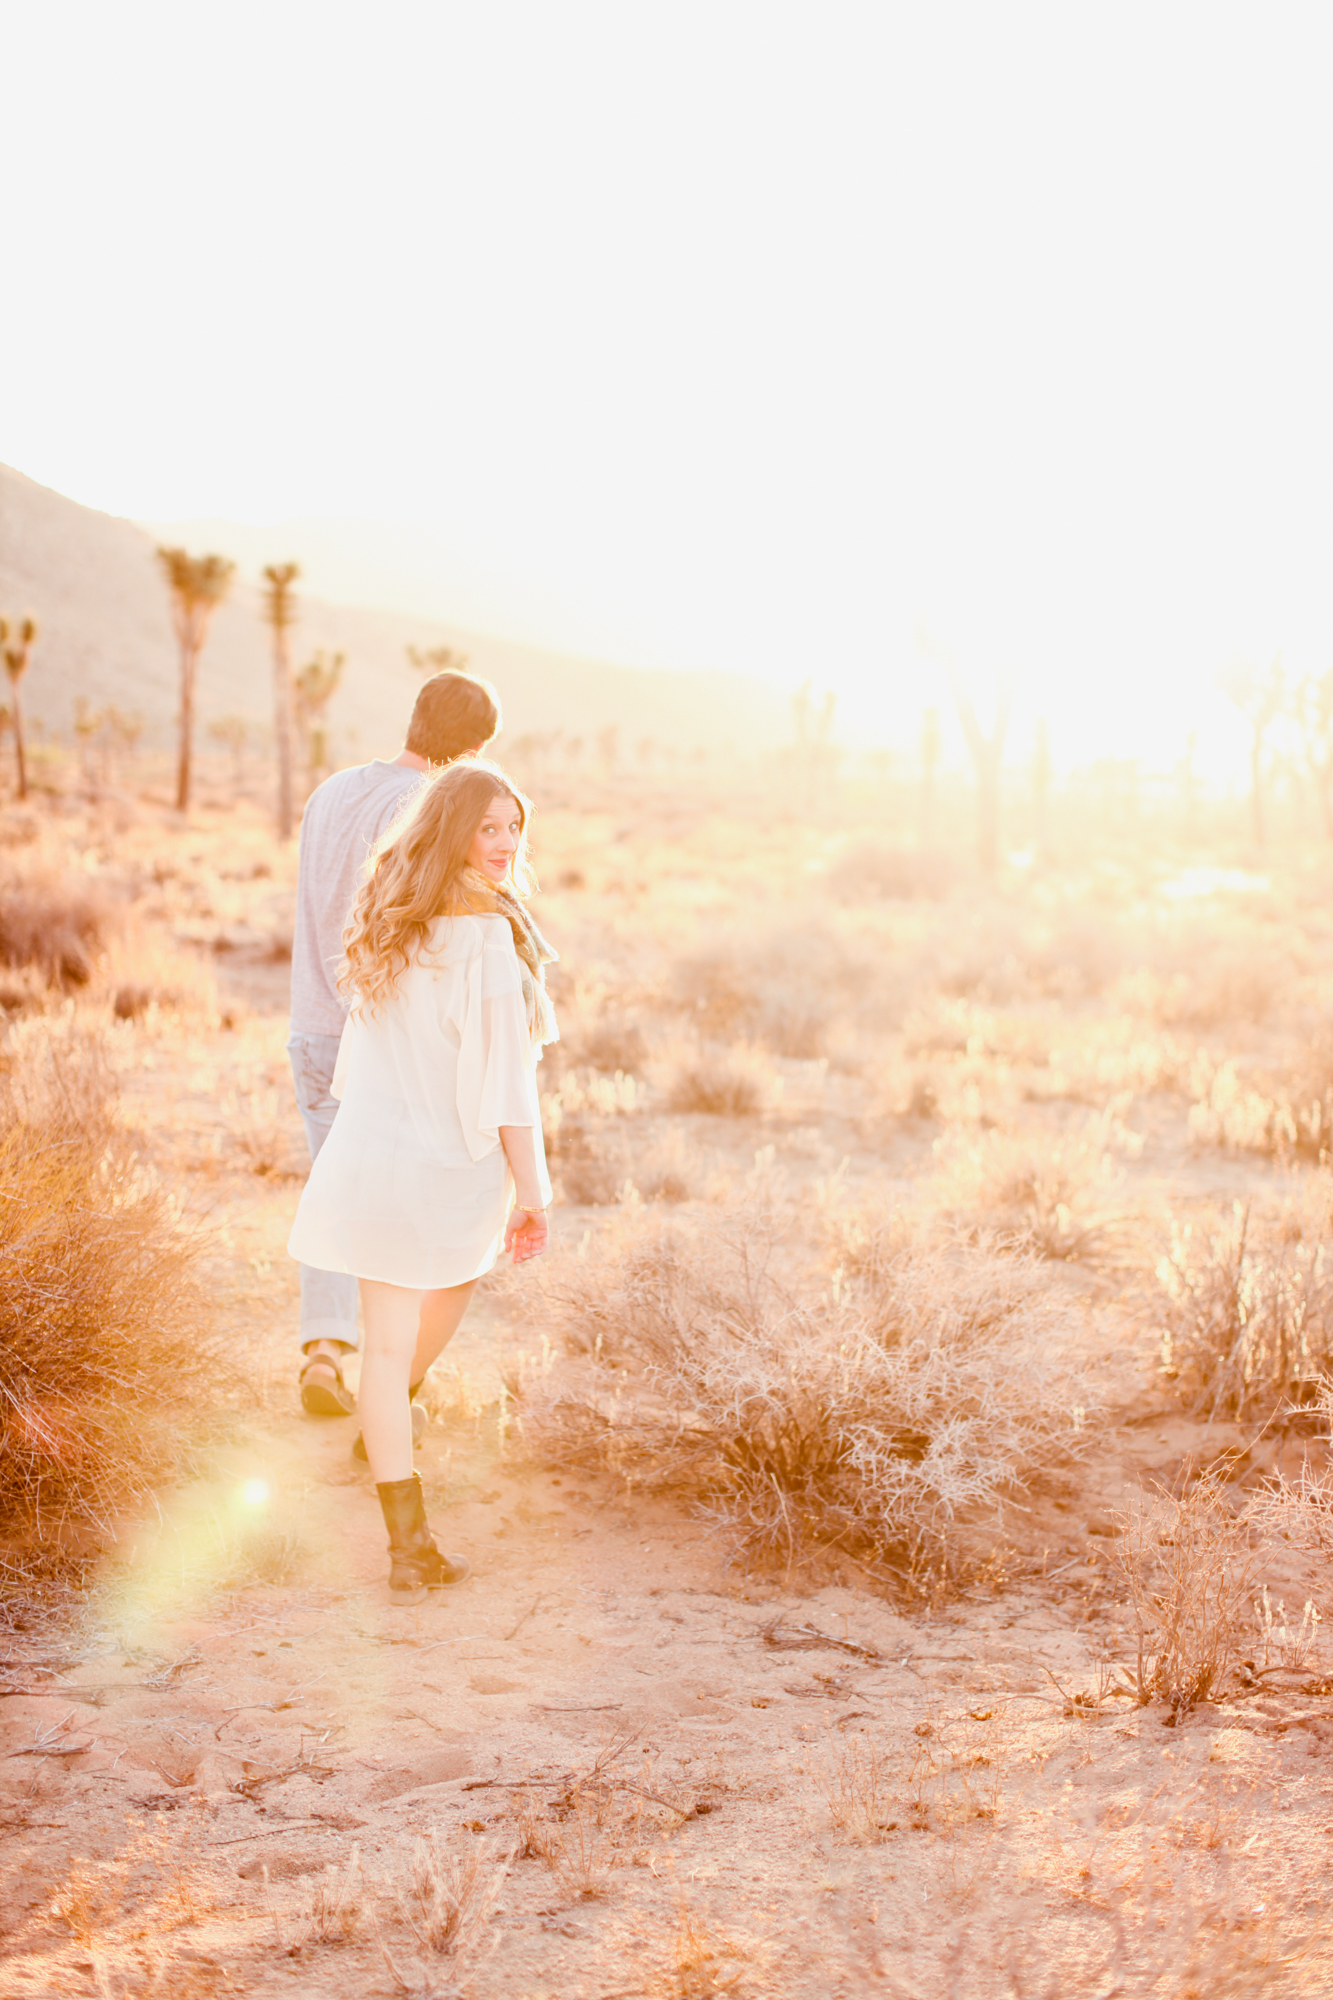 Lovisa Photo- Engagement Photography- Joshua Tree, California- Palm Springs